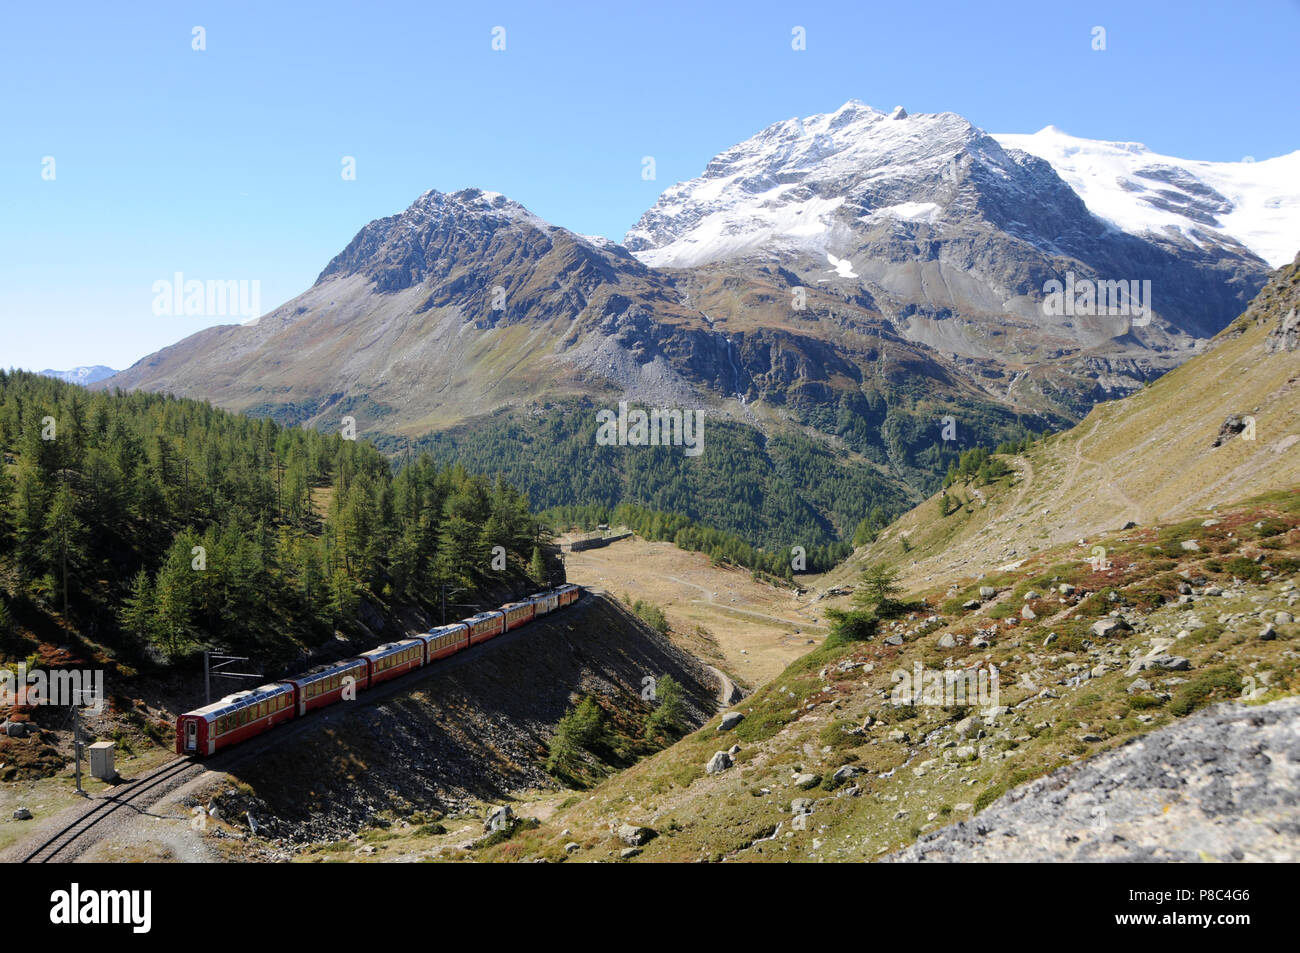 Bernina-Train in the swiss alps near Alp Grüm | Bernina-Express der Rhätischen Bahn im Puschlav - Stock Image